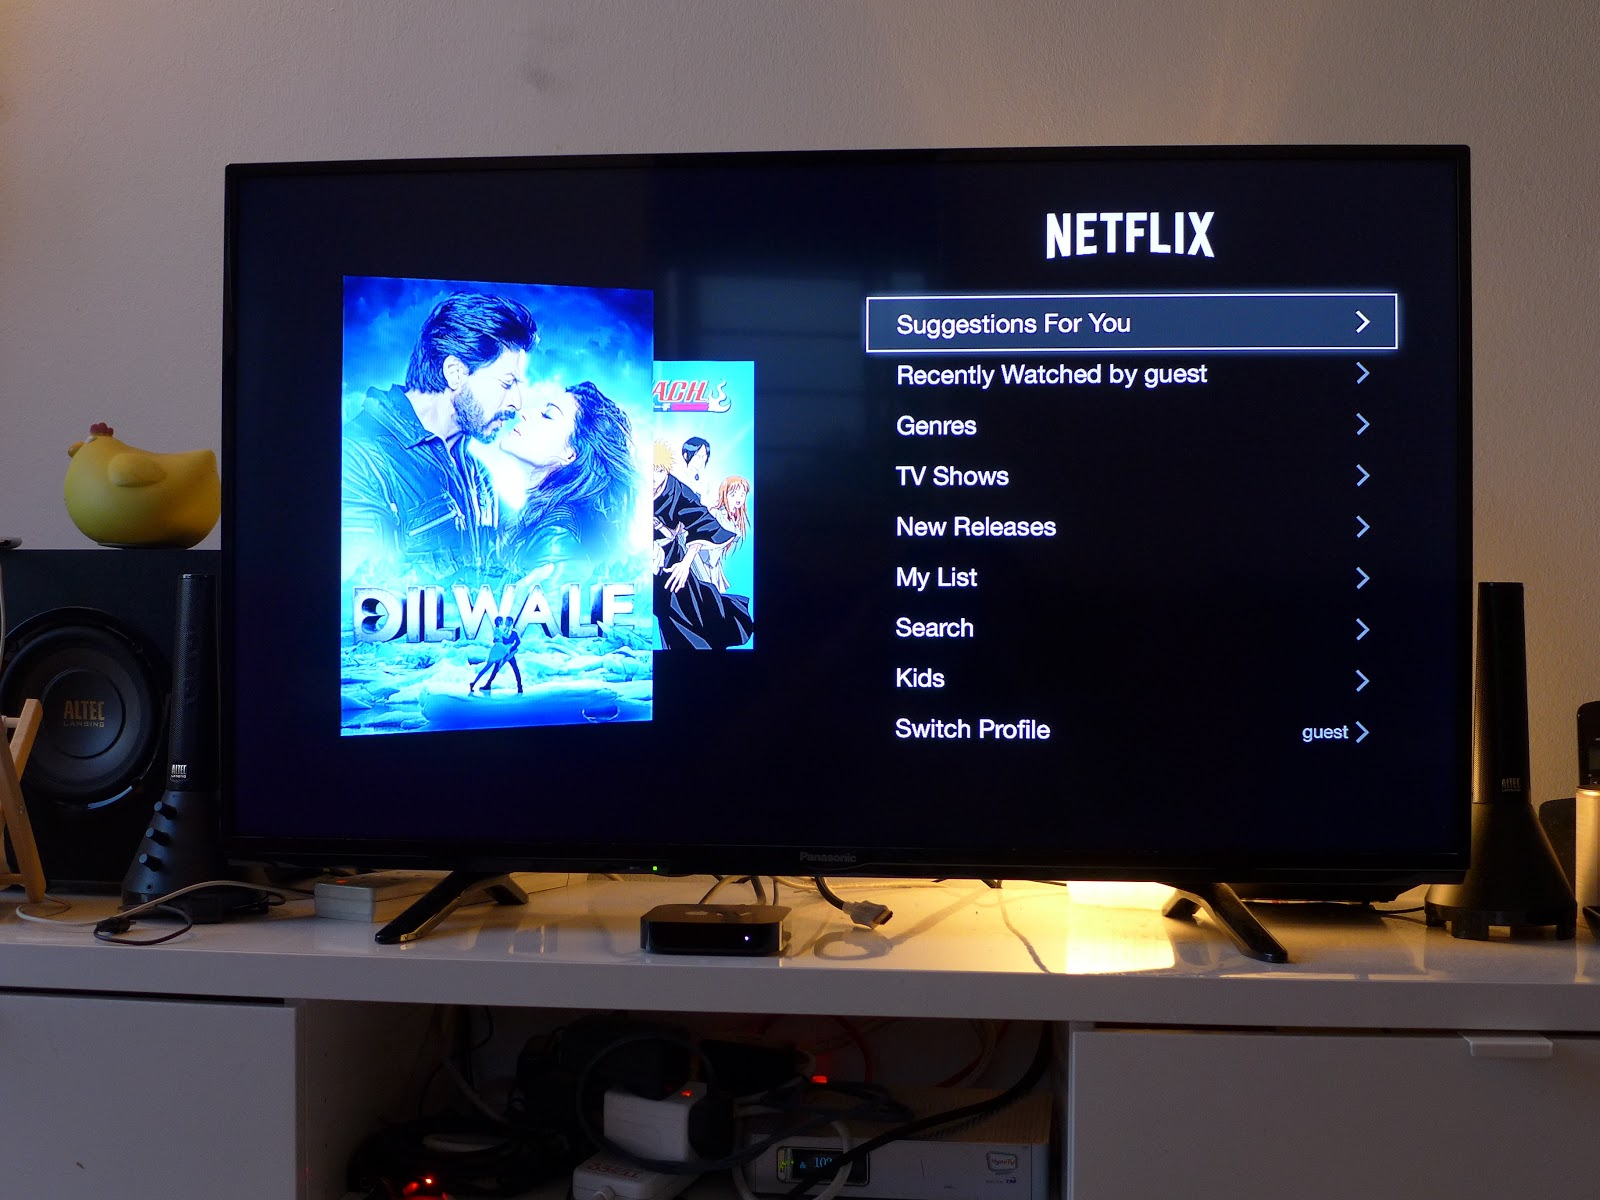 afifplc: Apple TV 3rd generation review